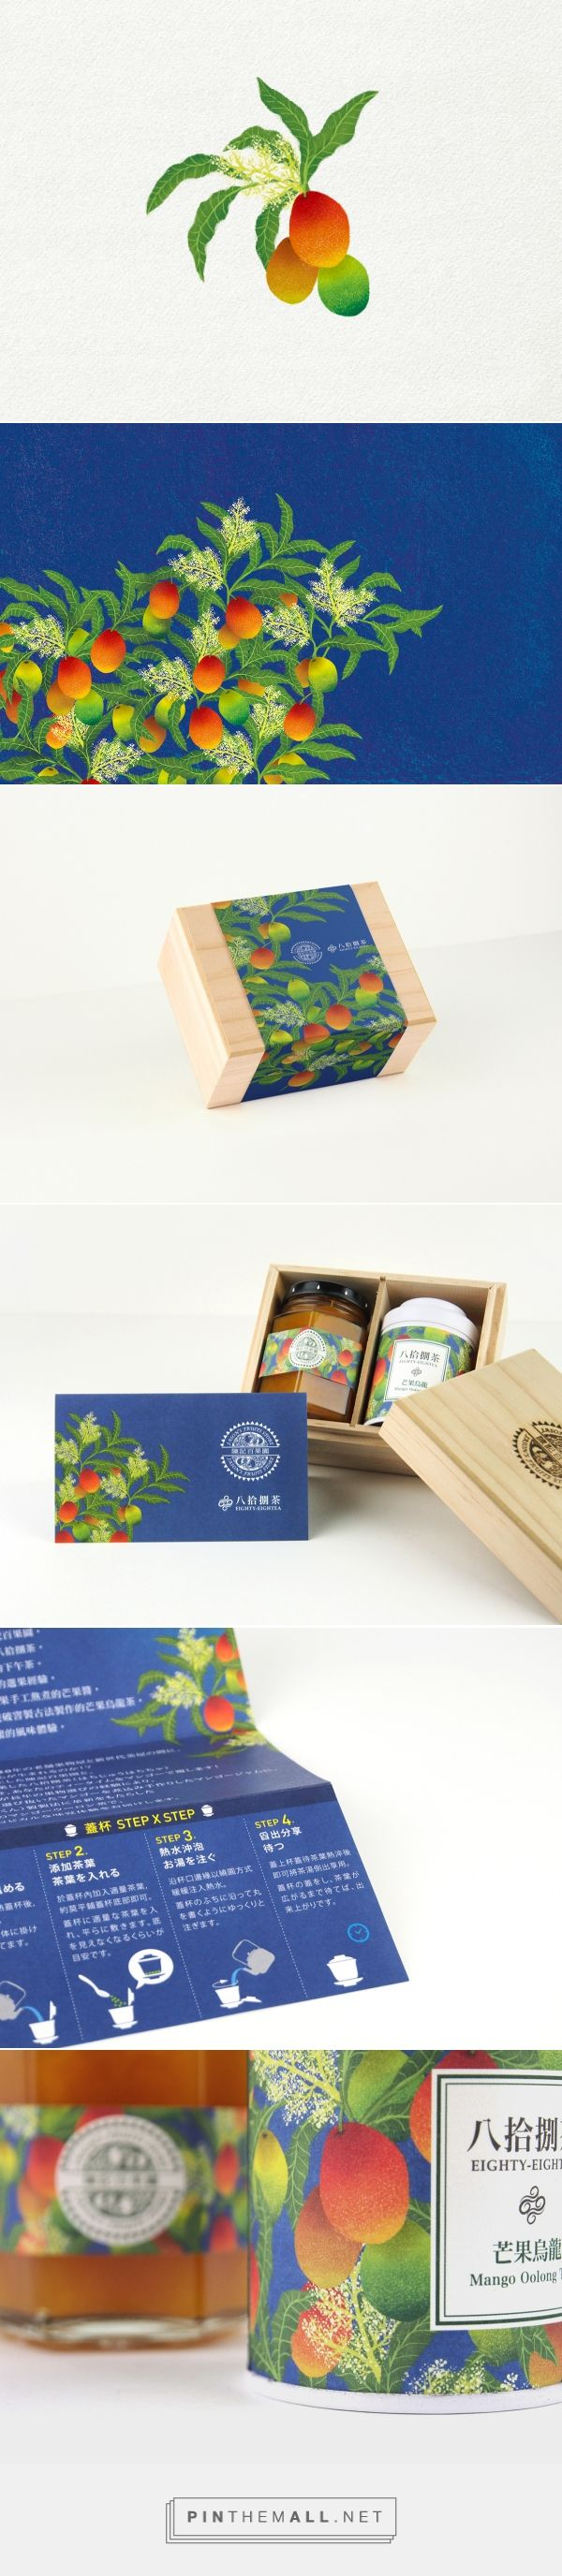 Packaging / Eighty-Eightea on Behance by Ihan Su Taipei, Taiwan curated by Packaging Diva PD. Packaging design for tea illustration, pattern design.